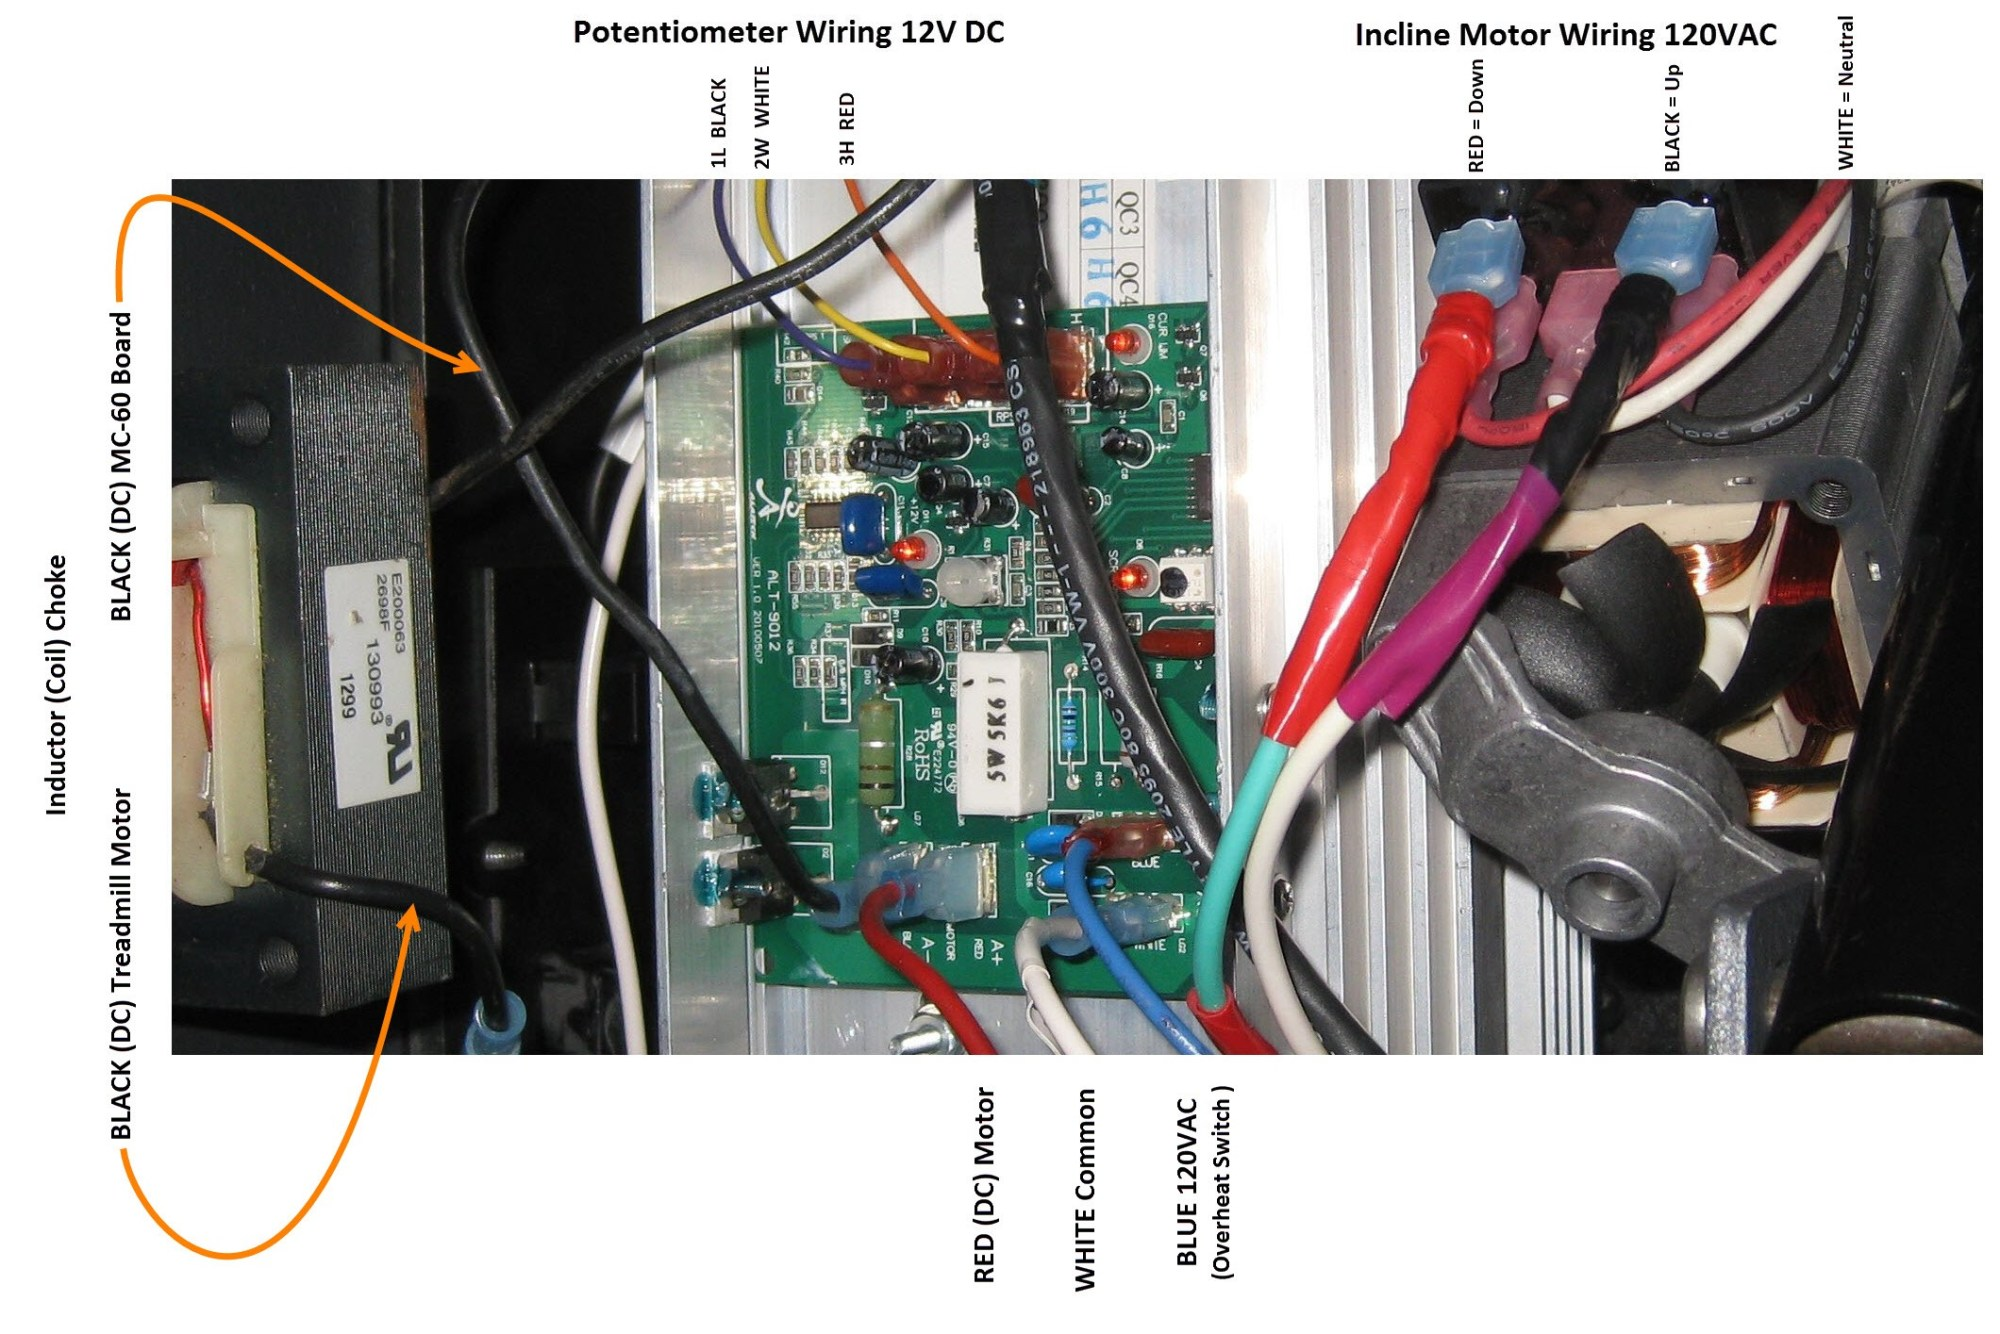 hight resolution of close up mc 60 wiring with part labels